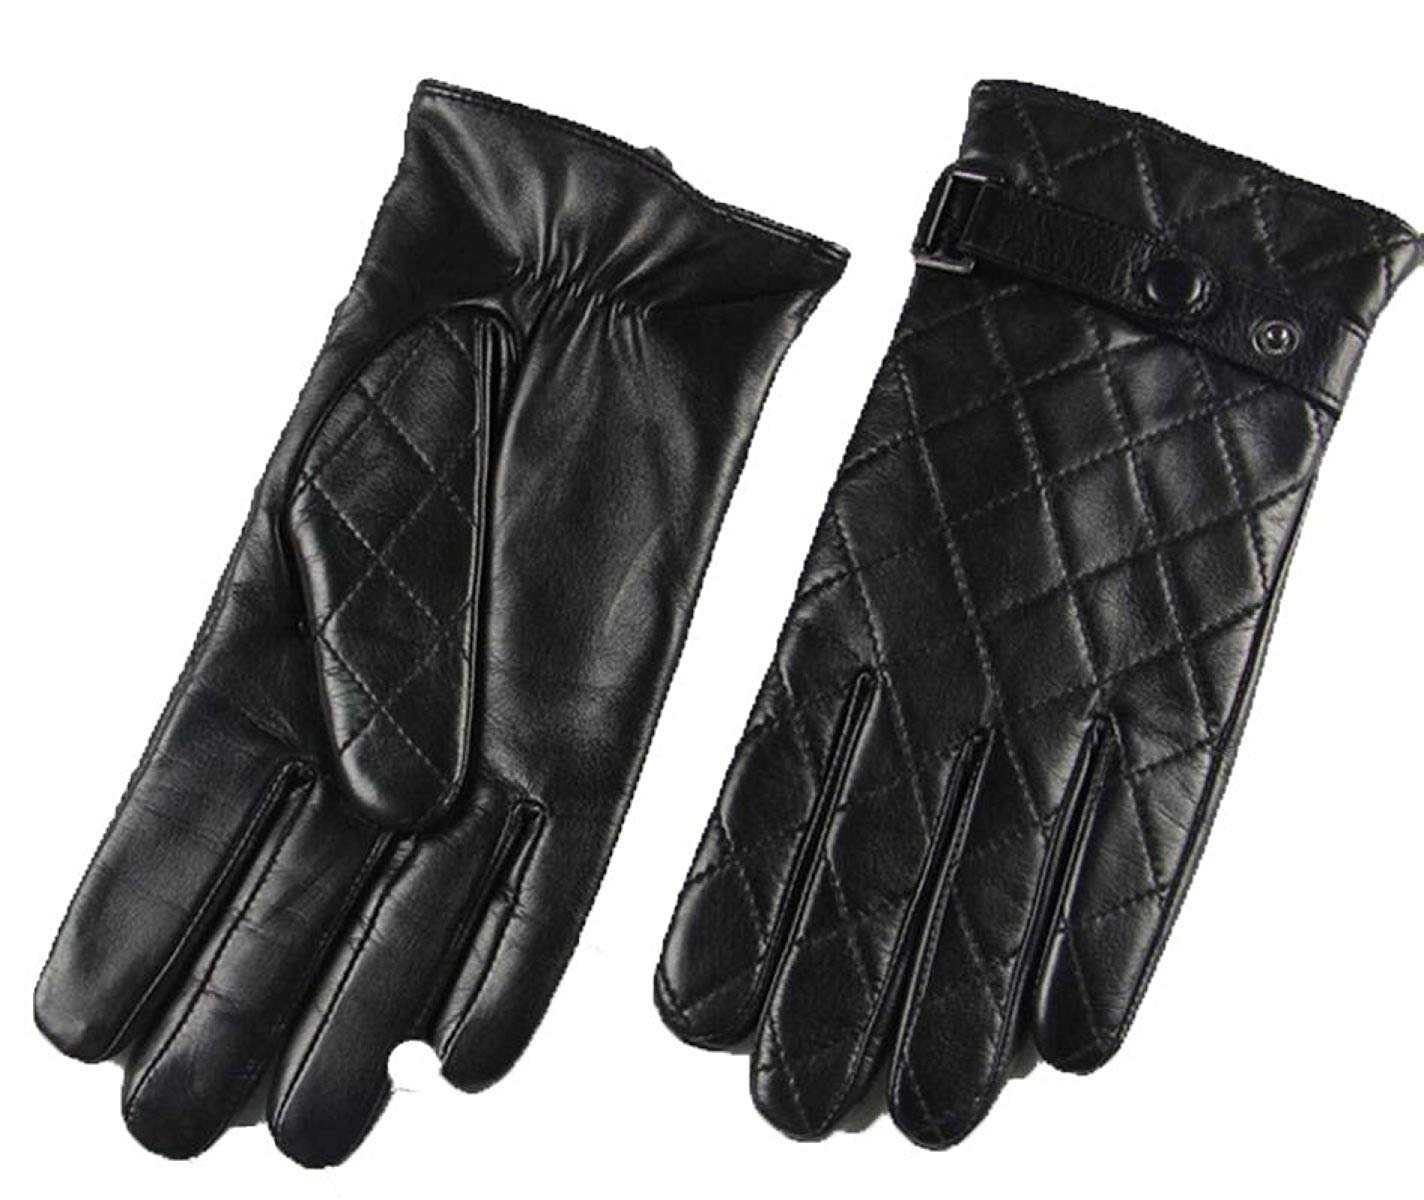 CWJ Men's Suede Leather Gloves Winter Warmth,Black,X-Large